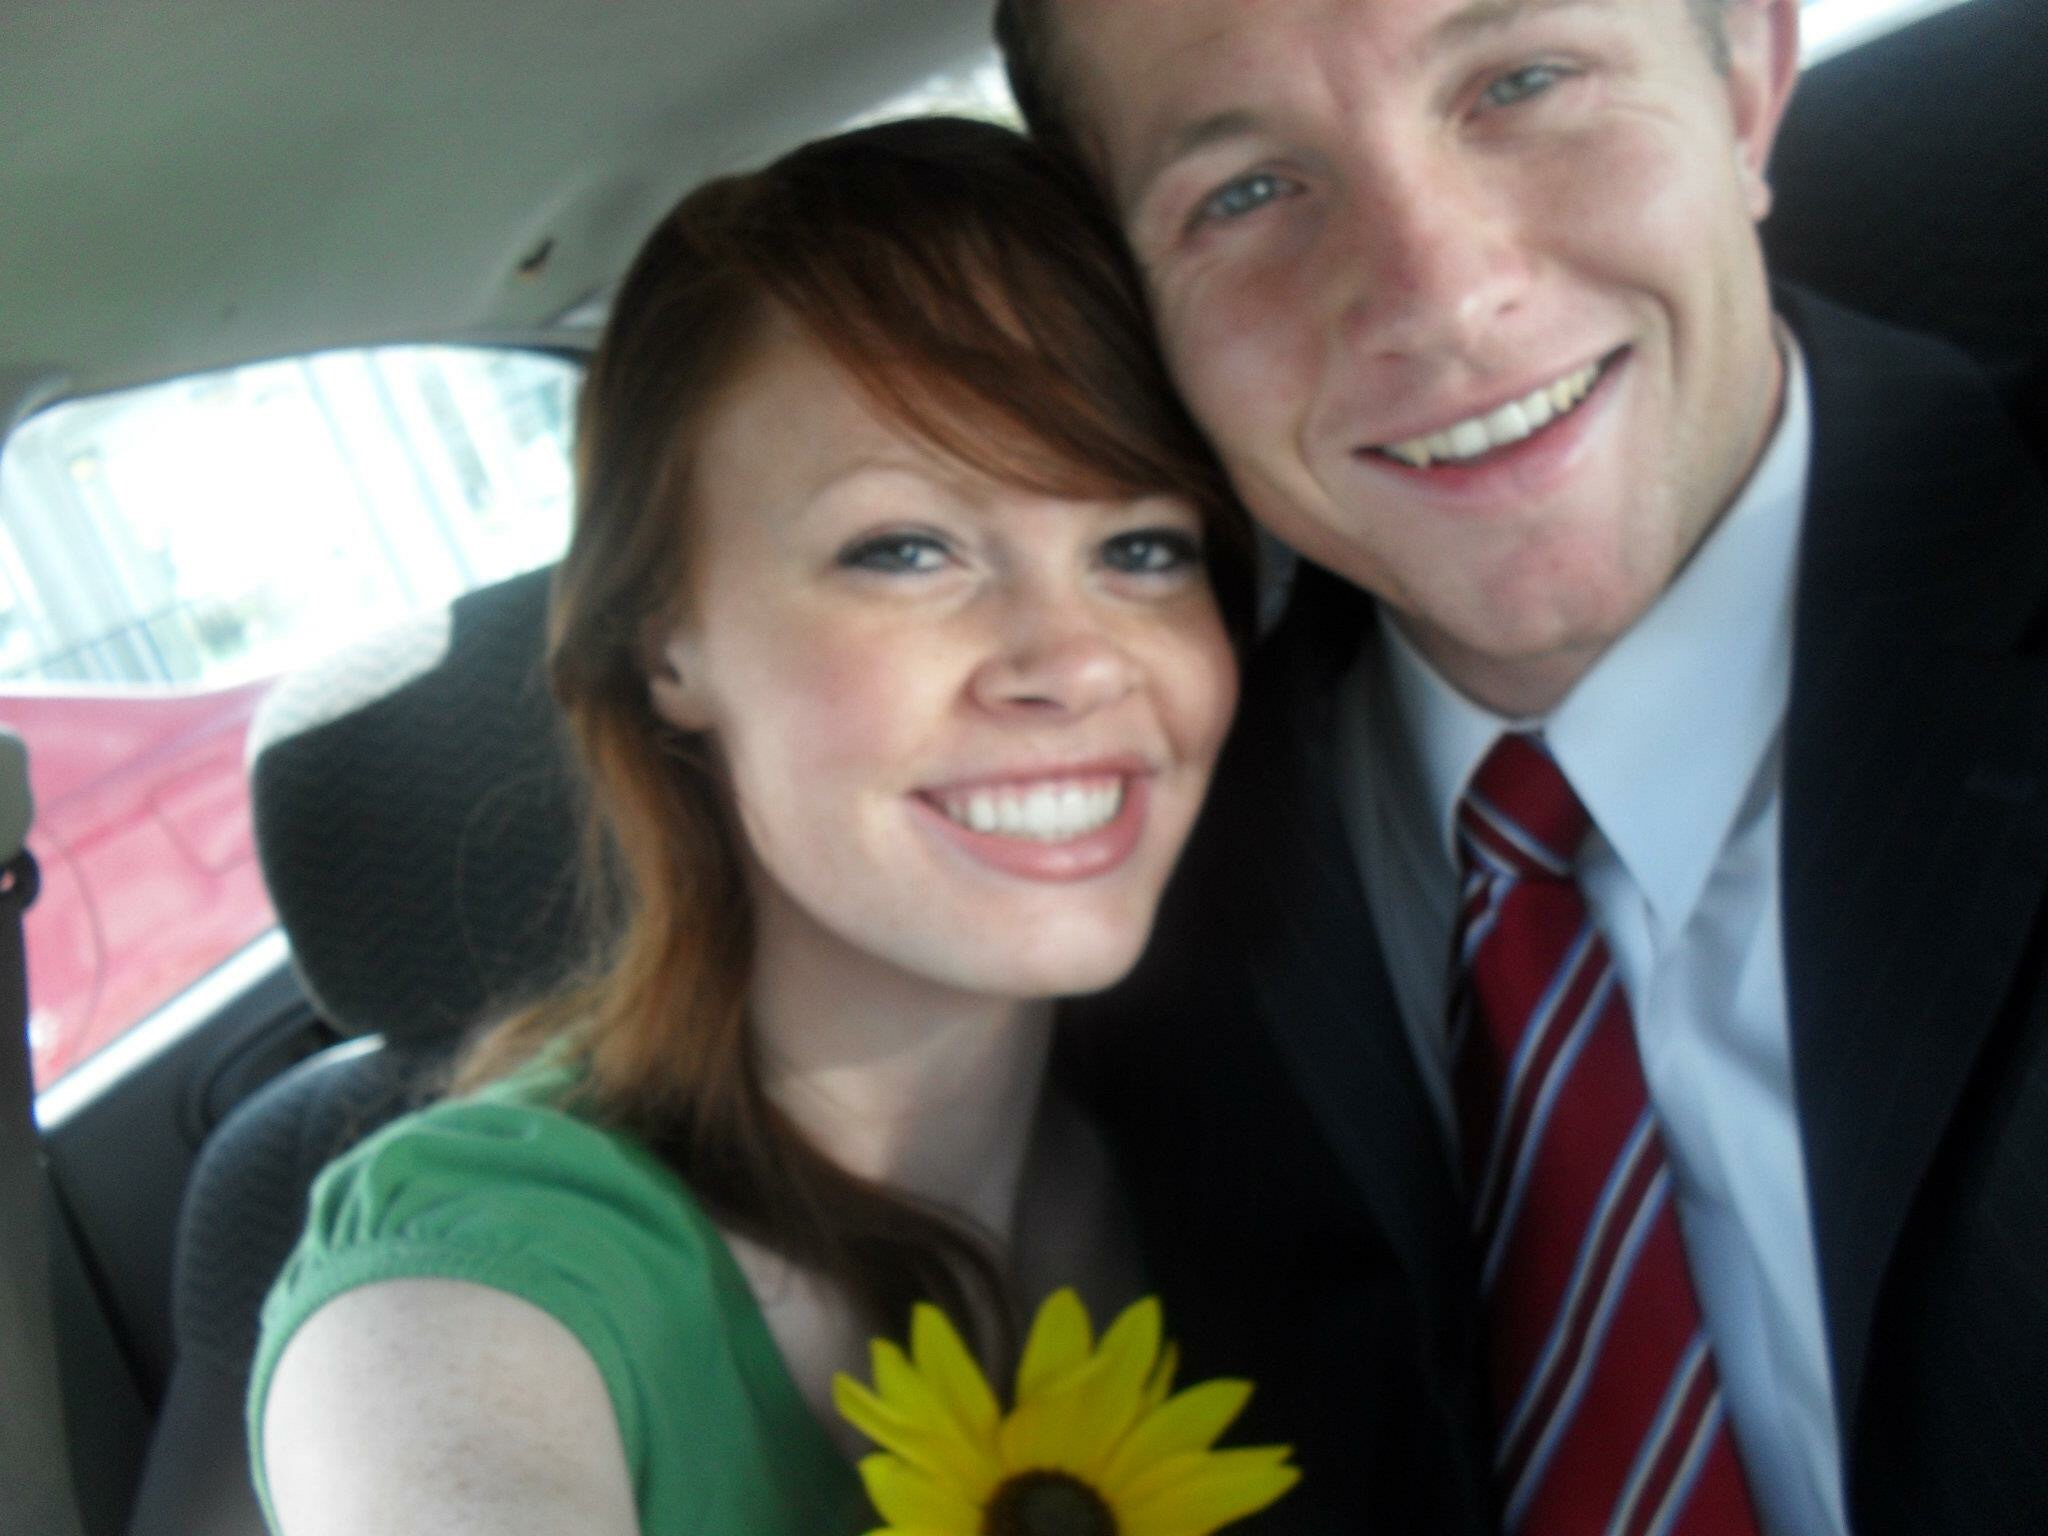 Before a trip to the temple!